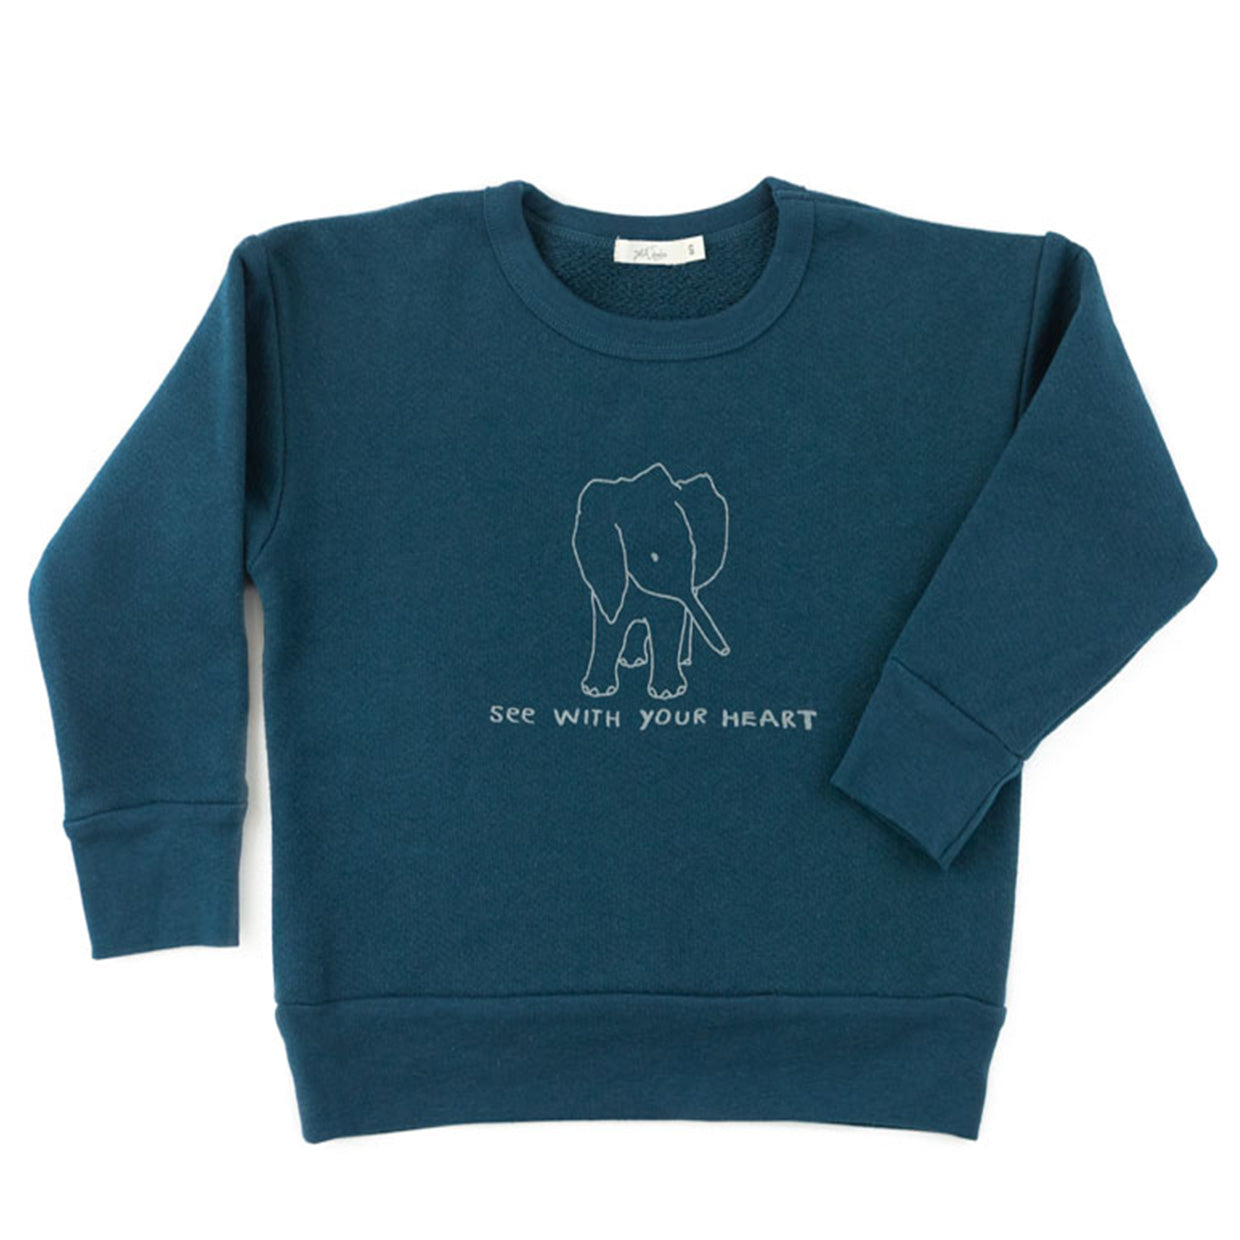 'see with your heart' pullover